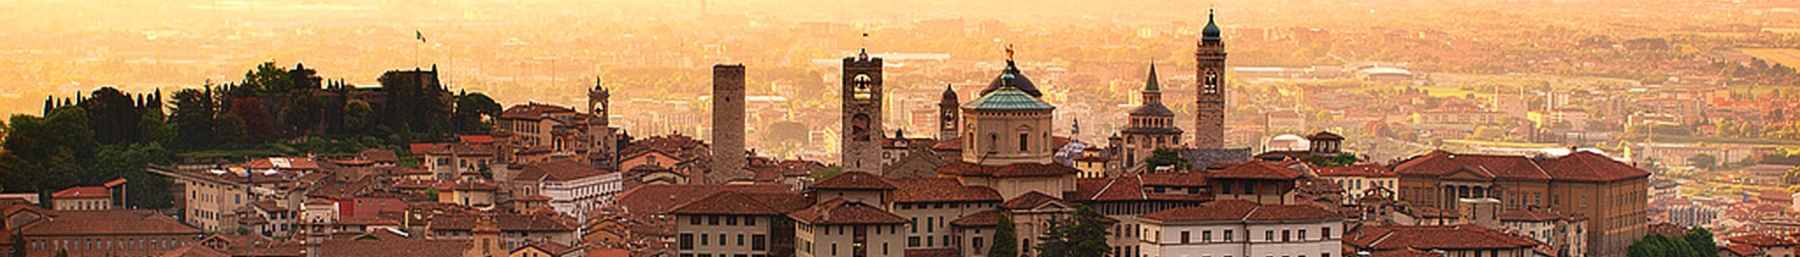 File:Italy banner Sunrise at Bergamo old town, Lombardy ...